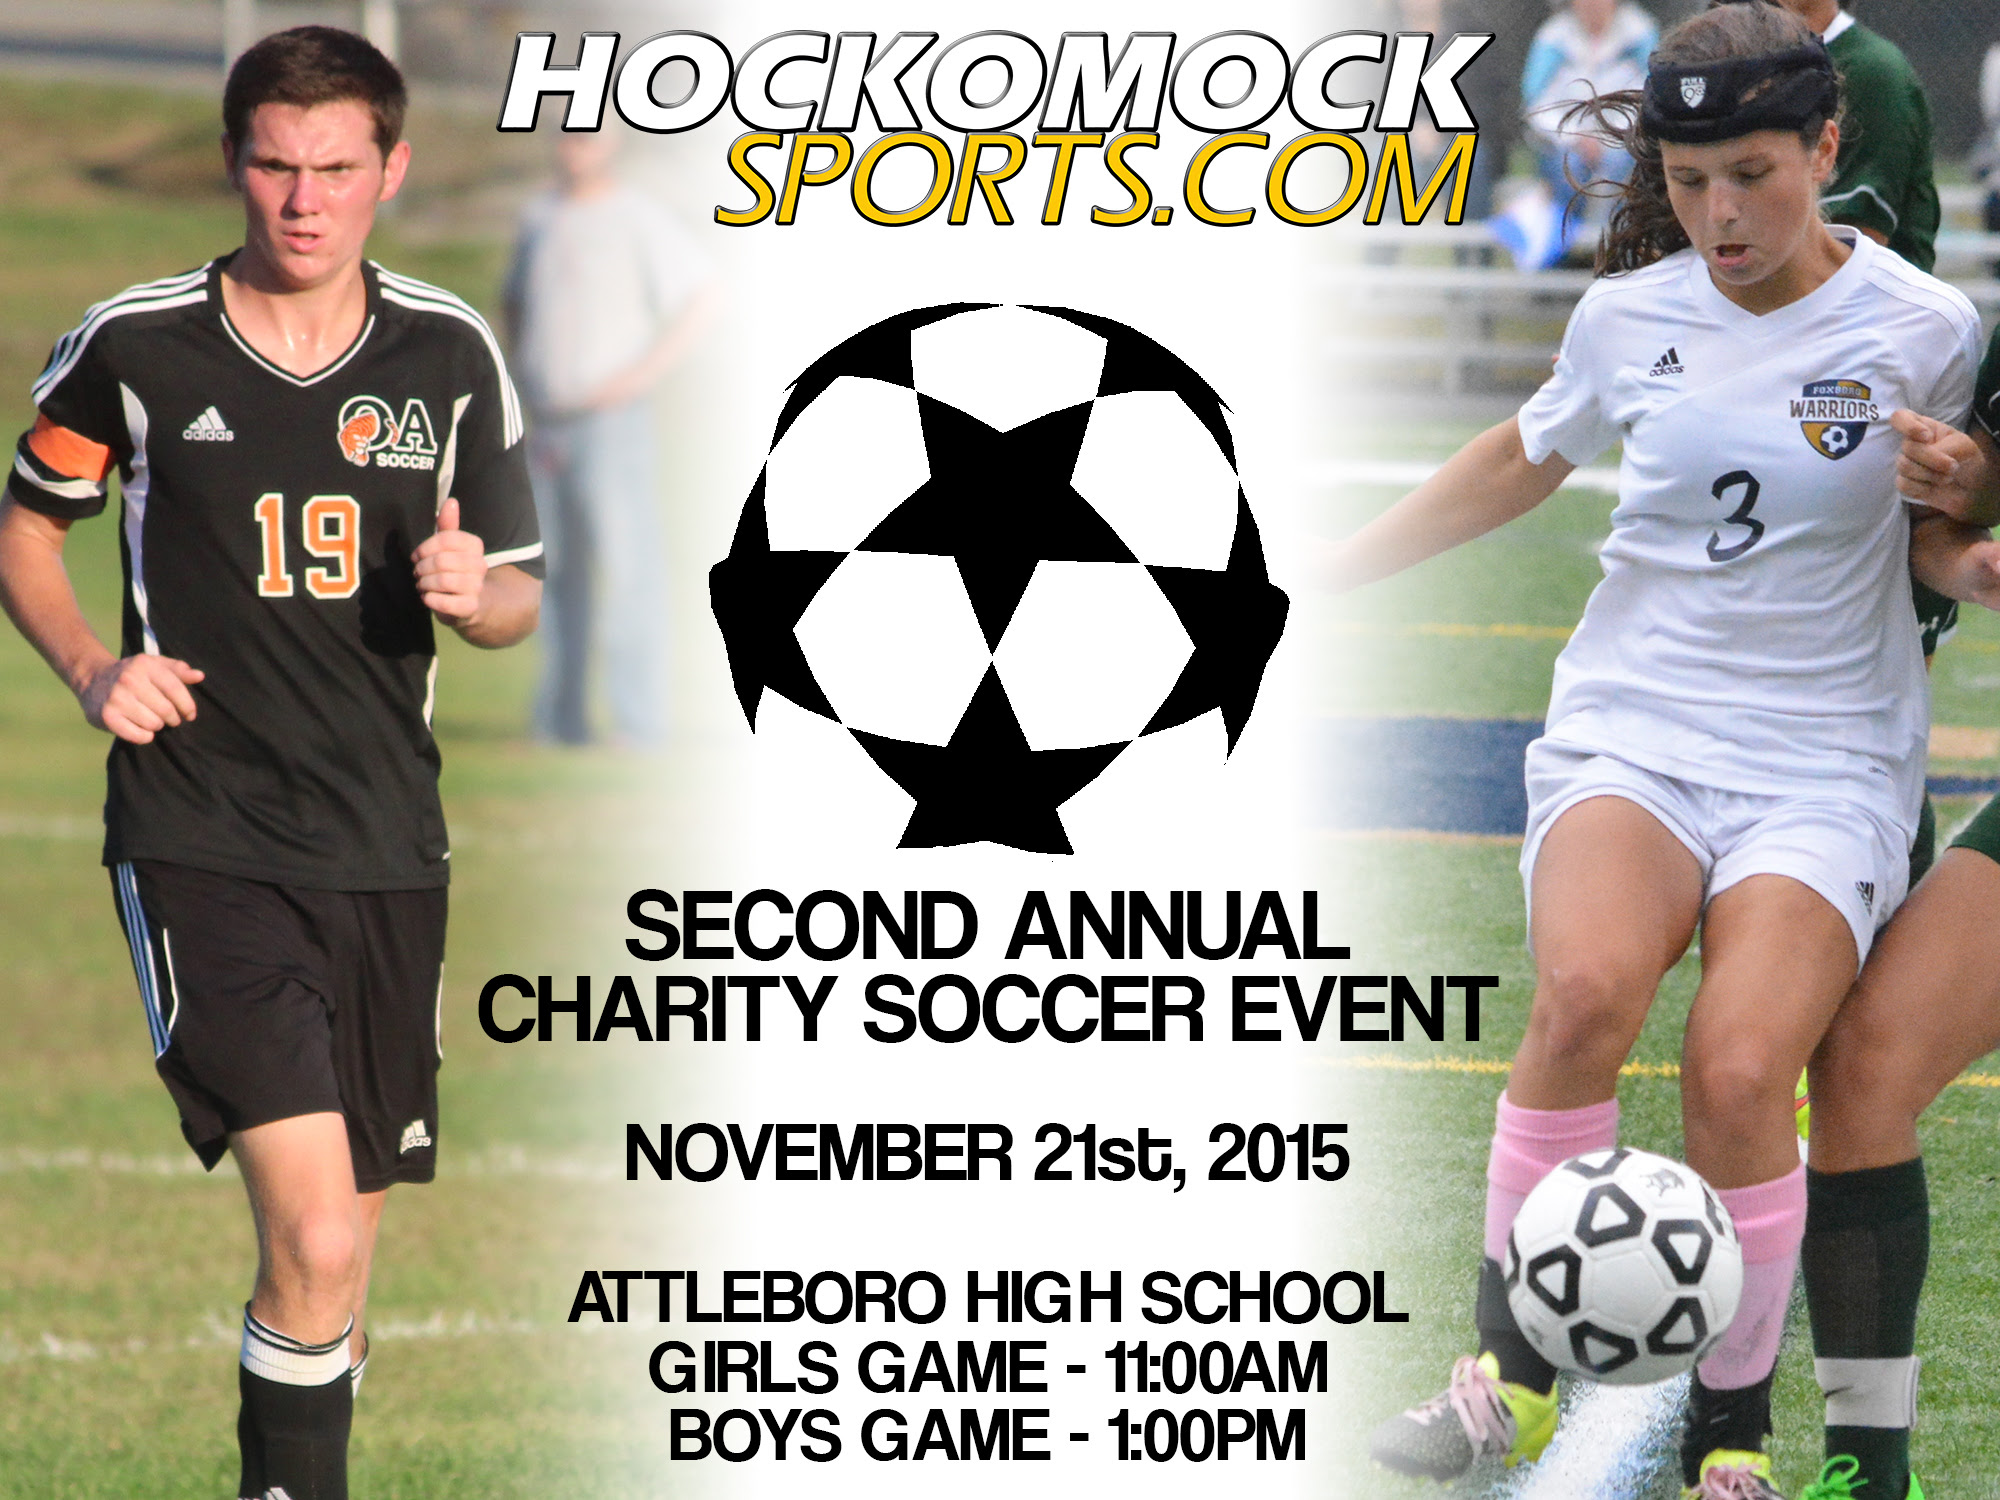 The 2nd Annual HockomockSports.com Charity Soccer All Star Event